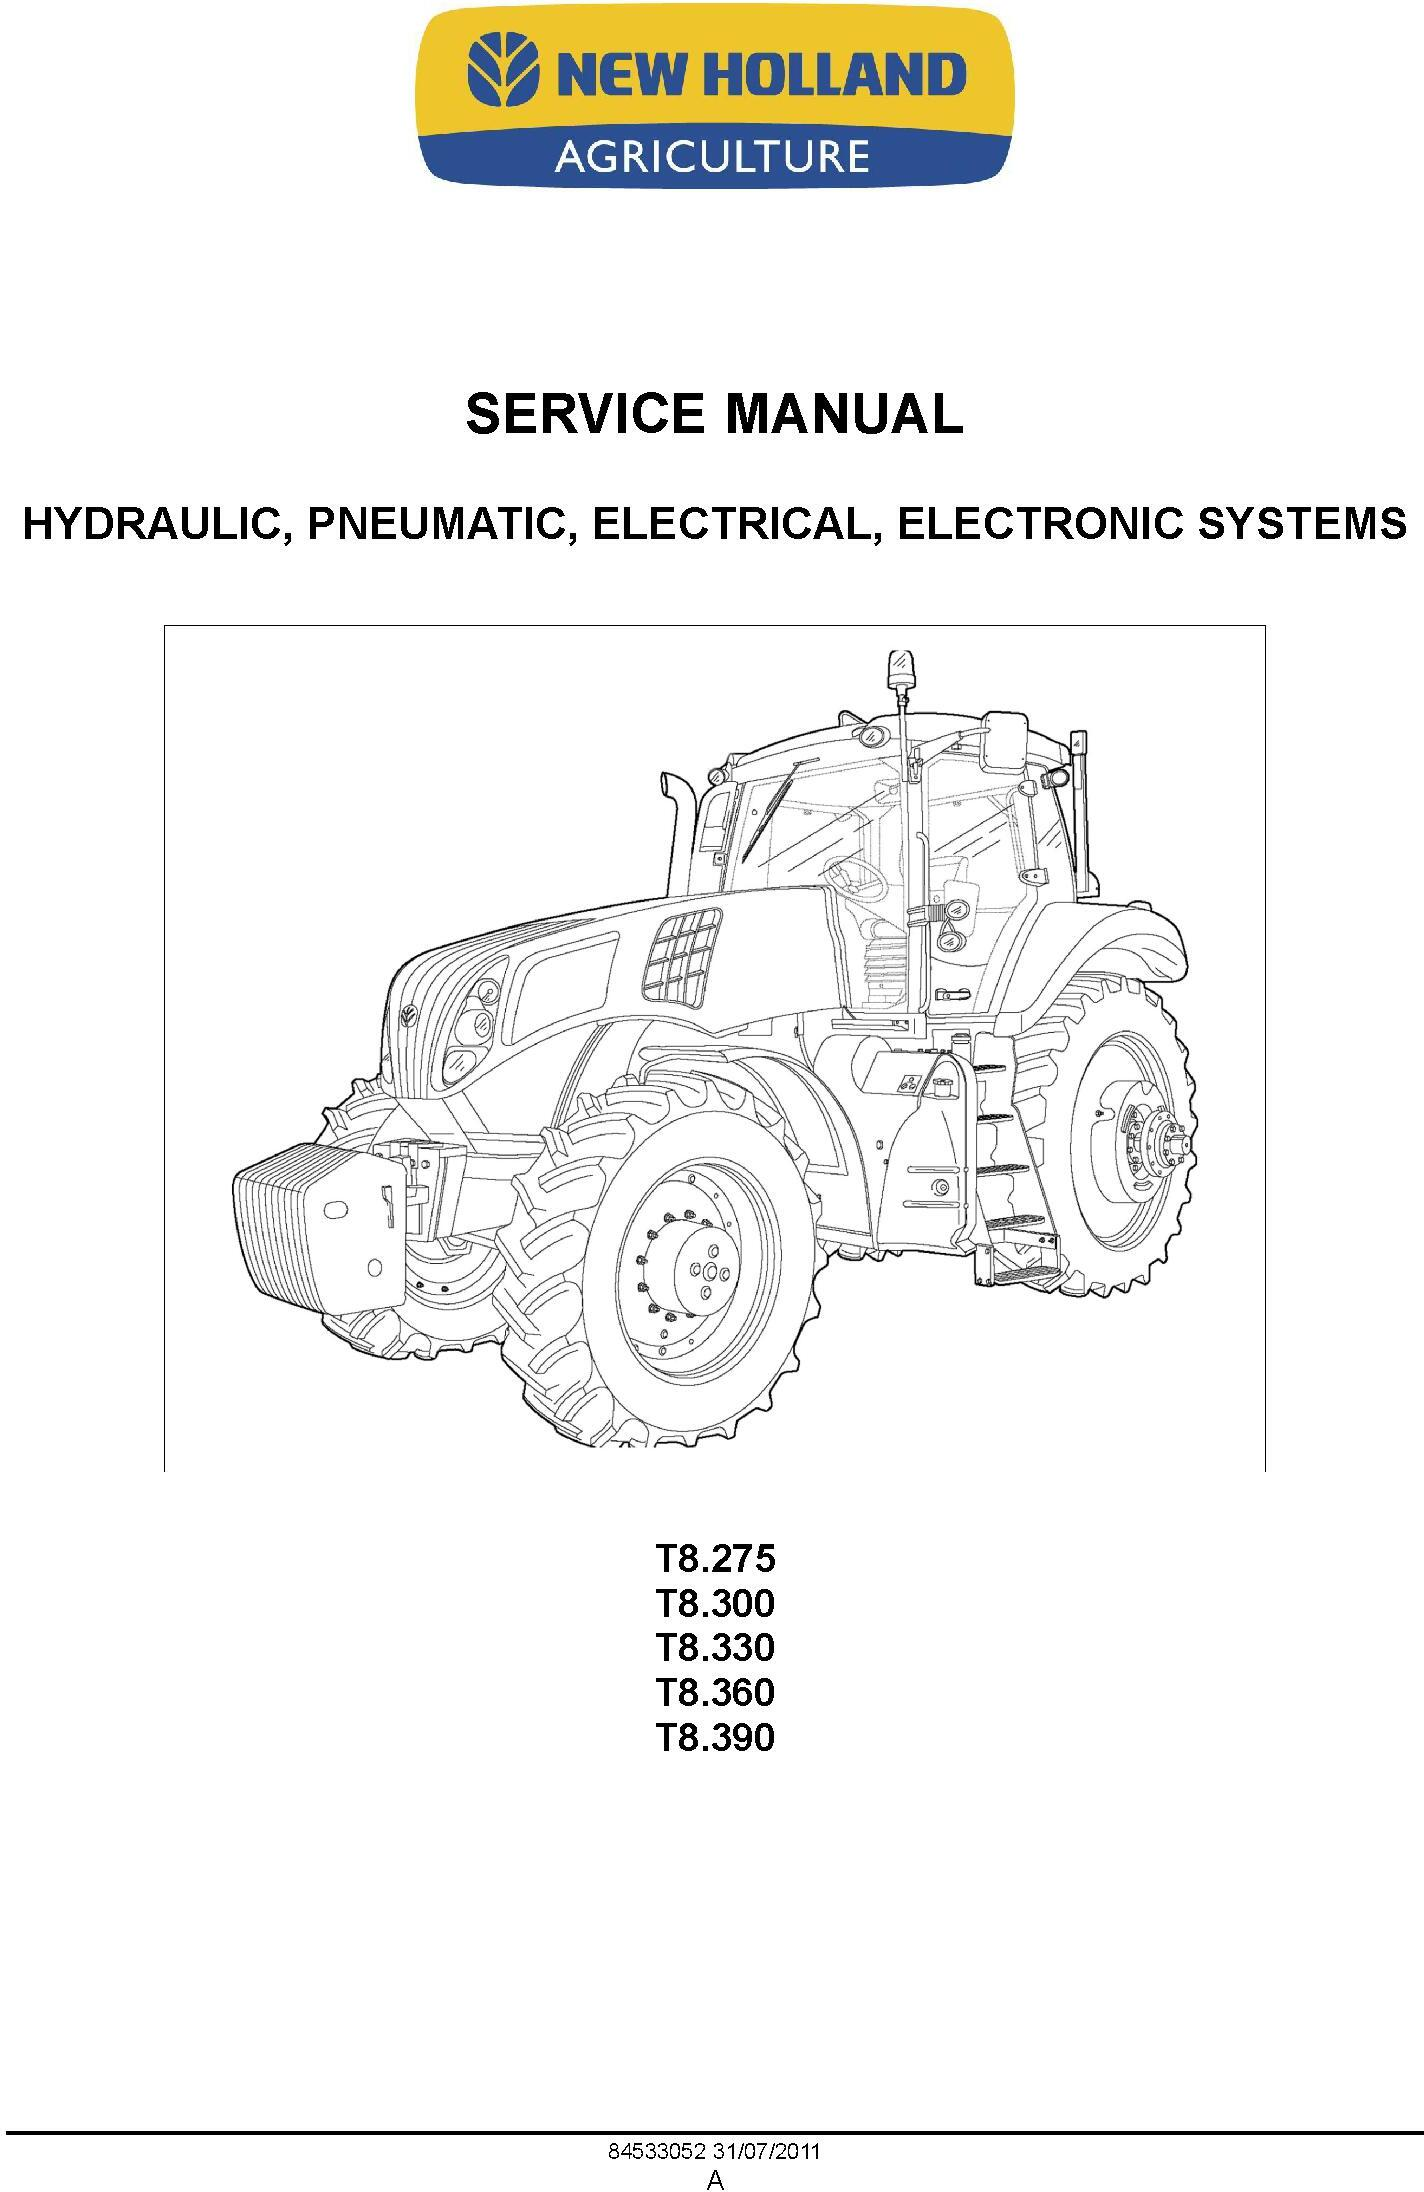 New Holland T8.275, T8.300, T8.330, T8.360, T8.390 Tractor Service Manual - 1